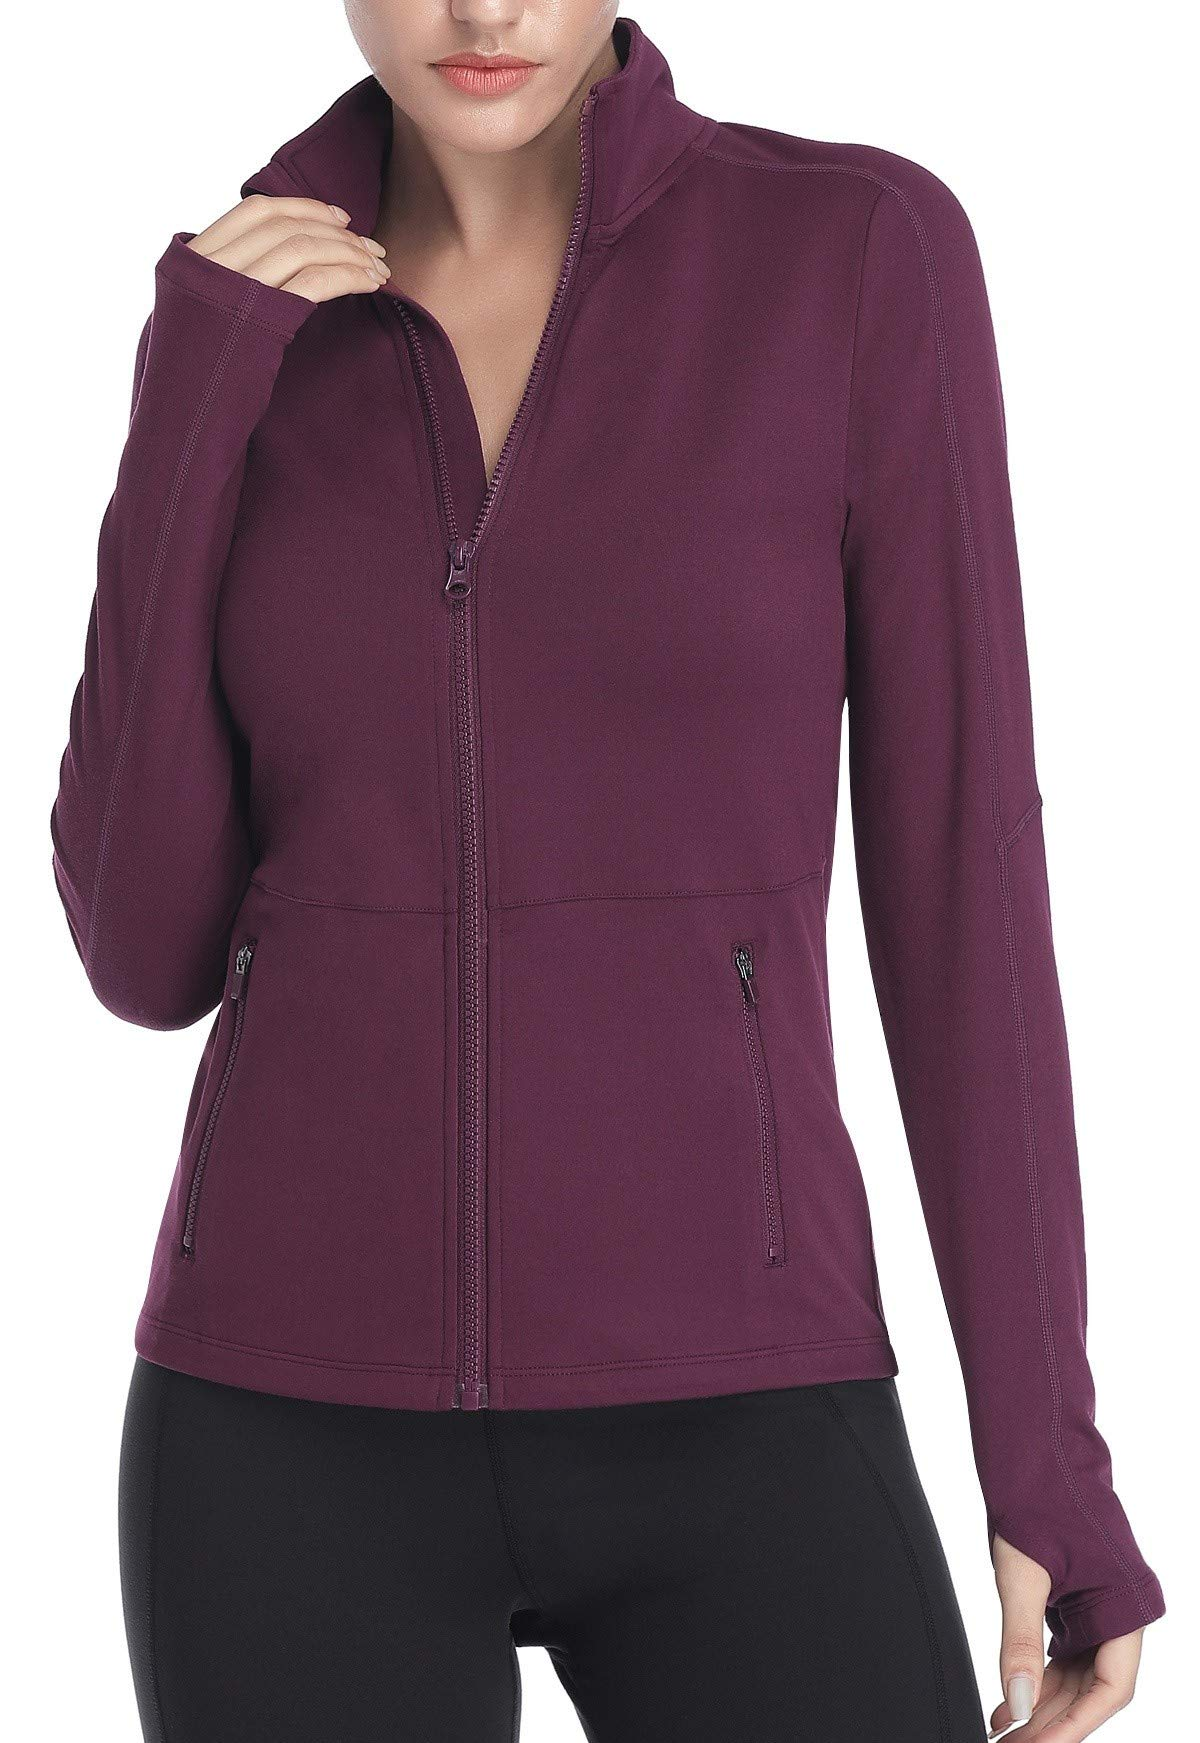 VUTRU Women's Workout Yoga Jacket Full Zip Running Track Jacket by VUTRU